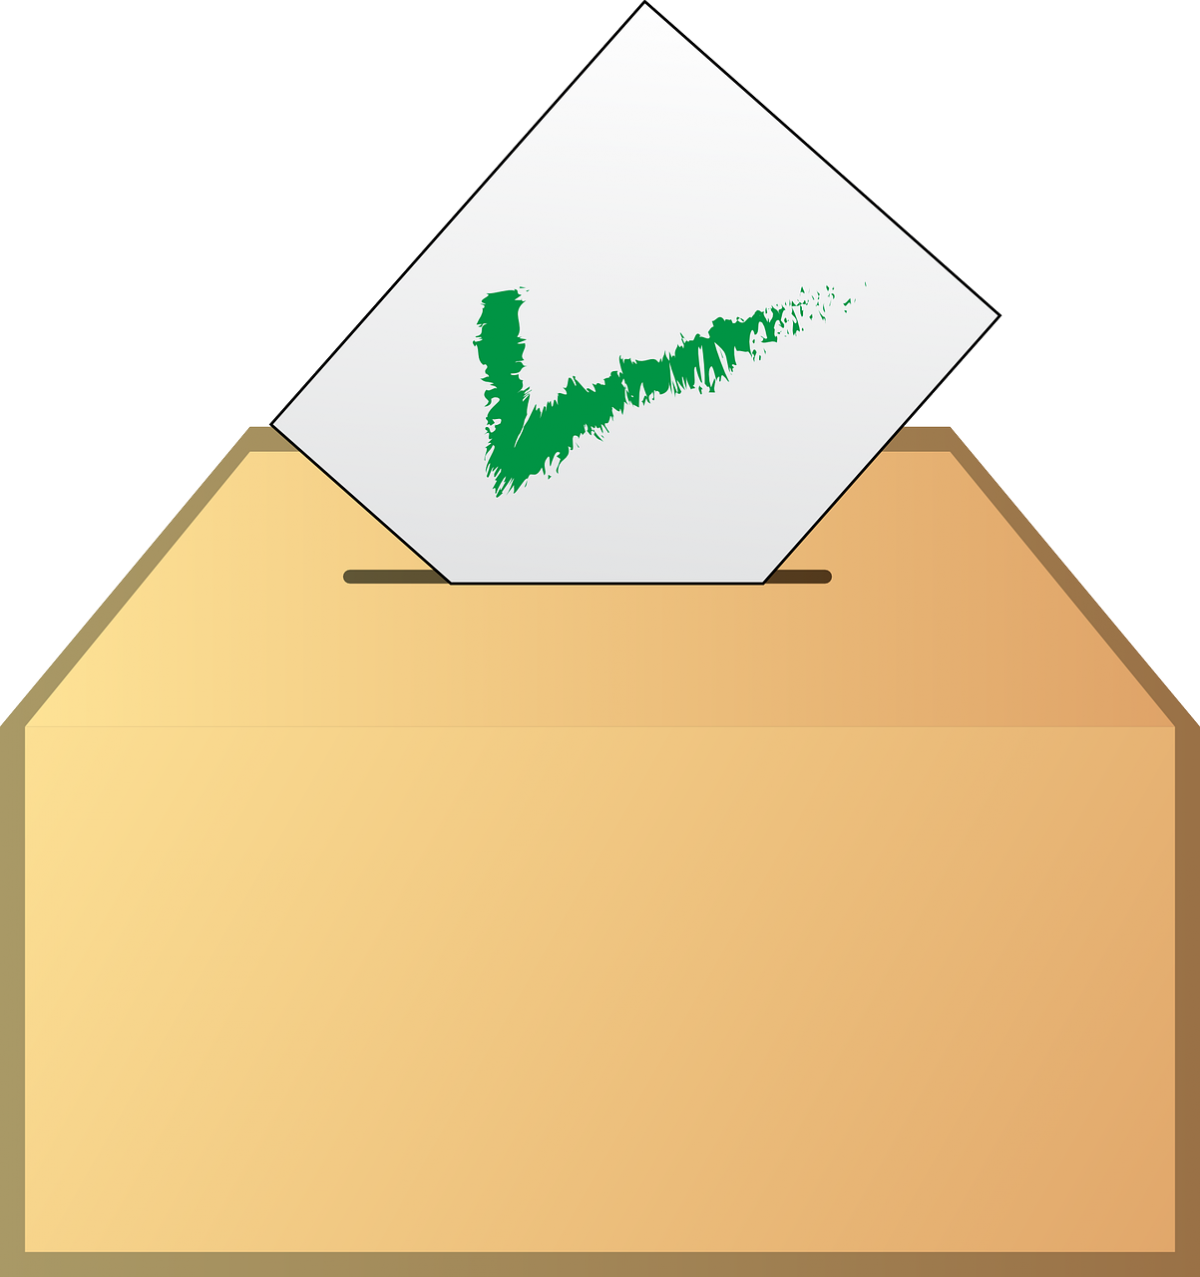 vector download Clipart vote election. Approval voting follow my